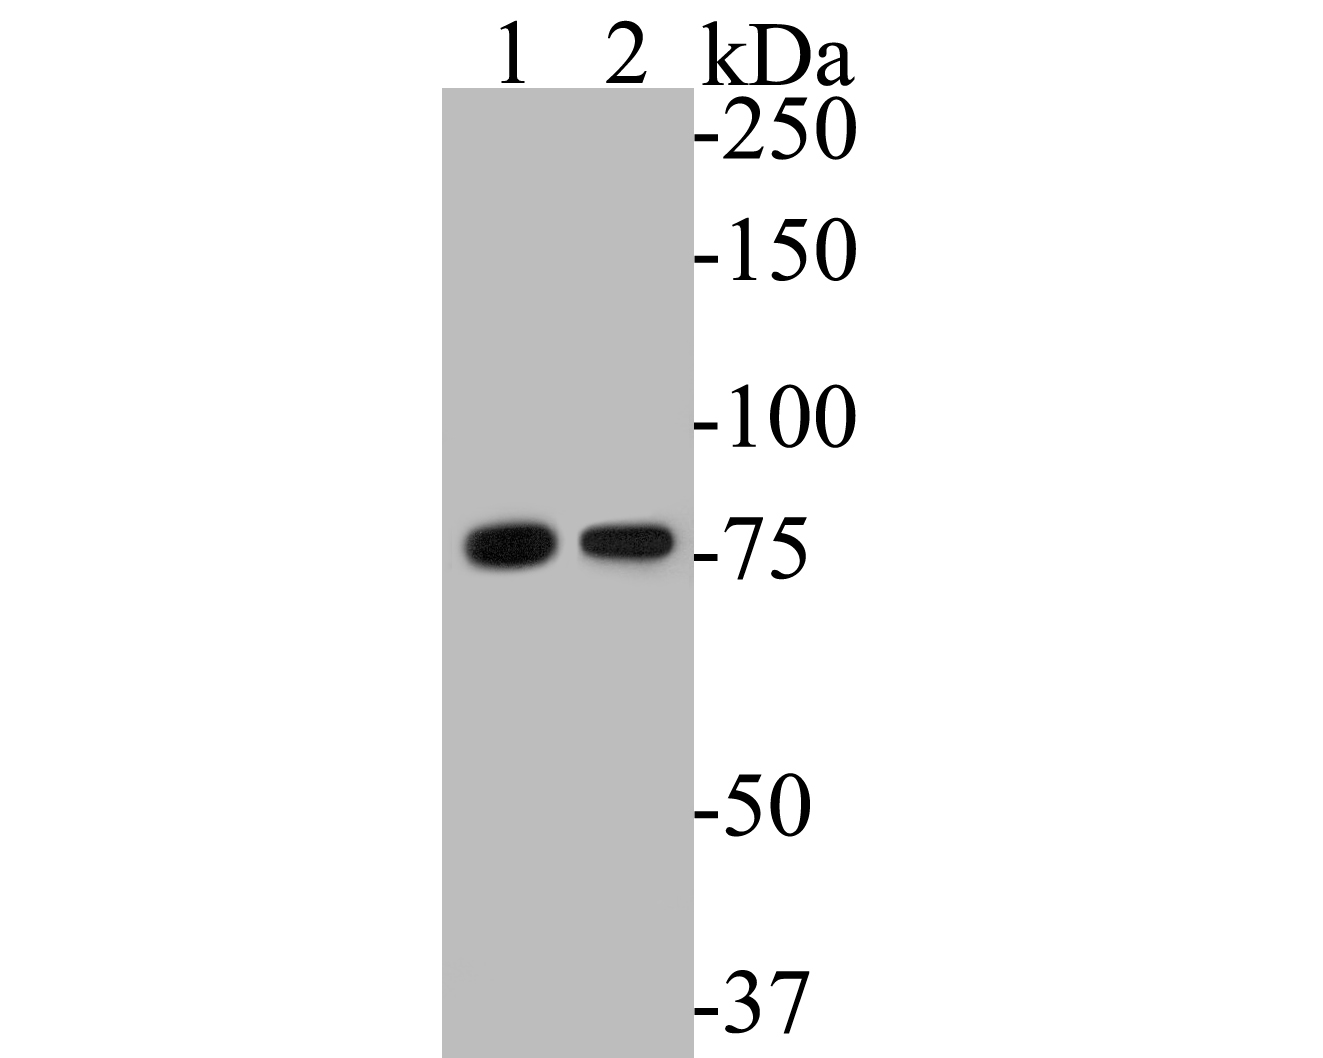 Western blot analysis of LYRIC on different lysates. Proteins were transferred to a PVDF membrane and blocked with 5% BSA in PBS for 1 hour at room temperature. The primary antibody (EM1901-60, 1/500) was used in 5% BSA at room temperature for 2 hours. Goat Anti-Mouse IgG - HRP Secondary Antibody (HA1006) at 1:5,000 dilution was used for 1 hour at room temperature.<br />  Positive control: <br />  Lane 1: MCF-7 cell lysate<br />  Lane 2: Jurkat cell lysate